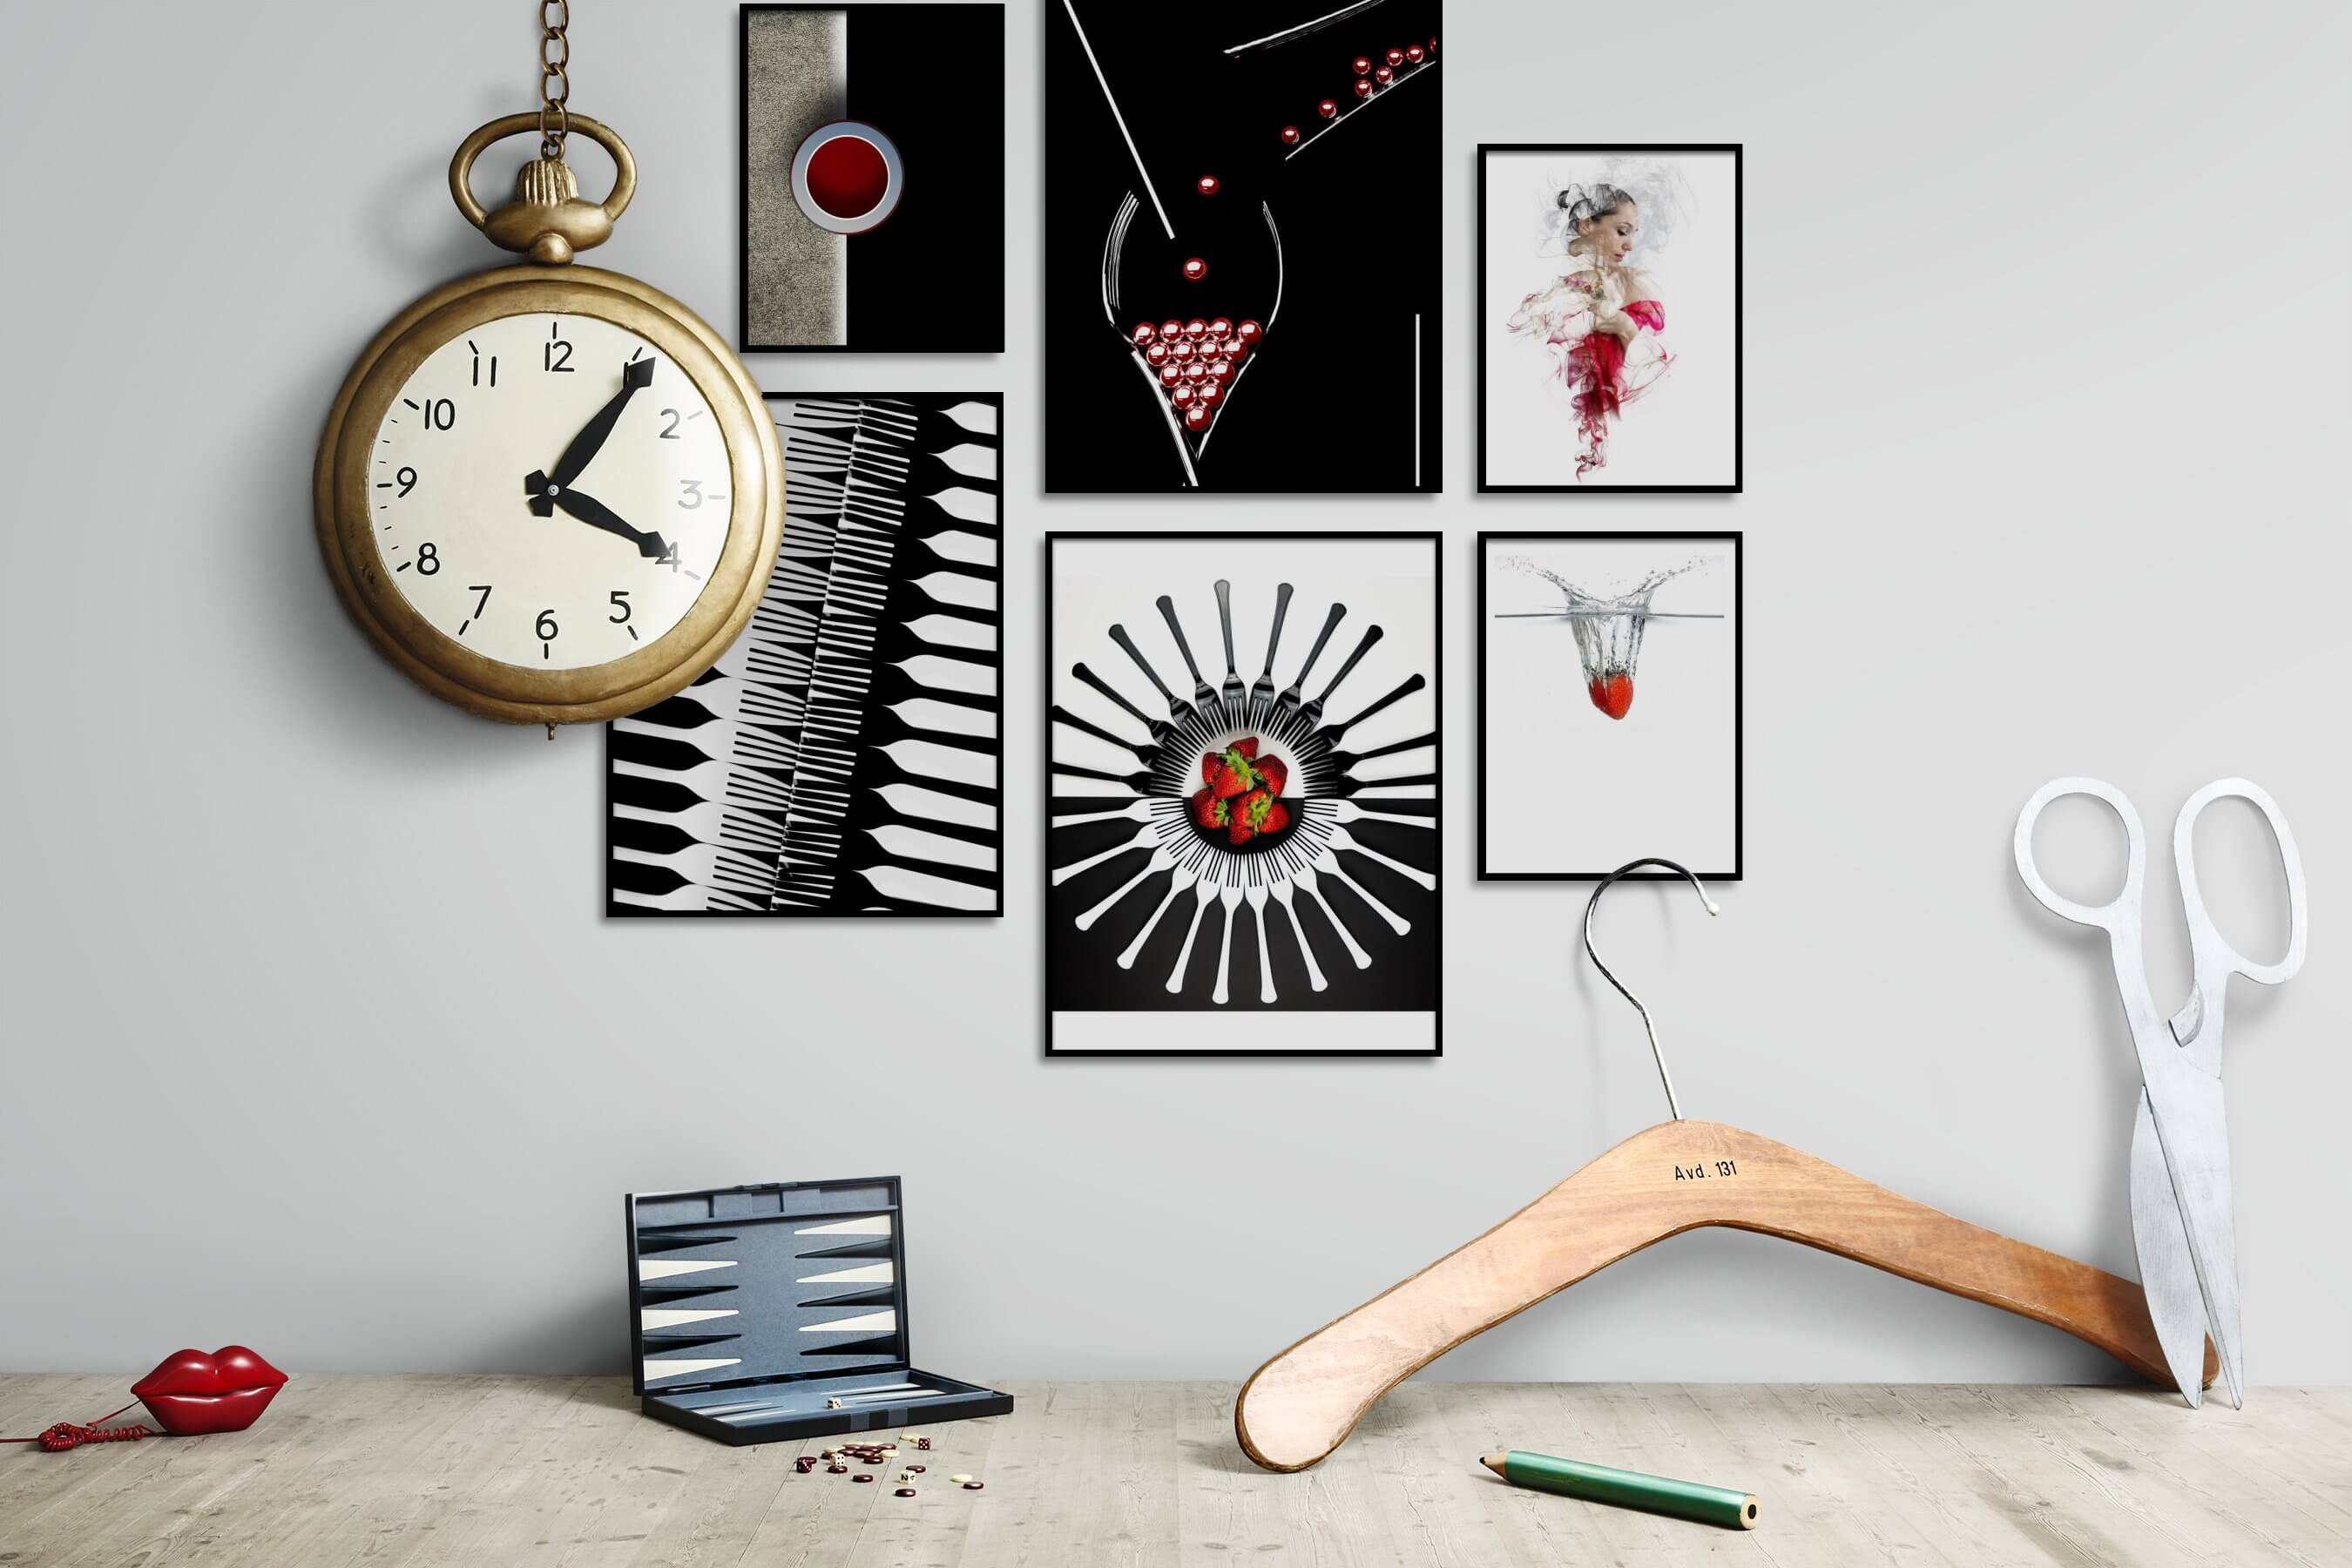 Gallery wall idea with six framed pictures arranged on a wall depicting For the Minimalist, Dark Tones, For the Moderate, Black & White, For the Maximalist, Fashion & Beauty, Bright Tones, and Beach & Water